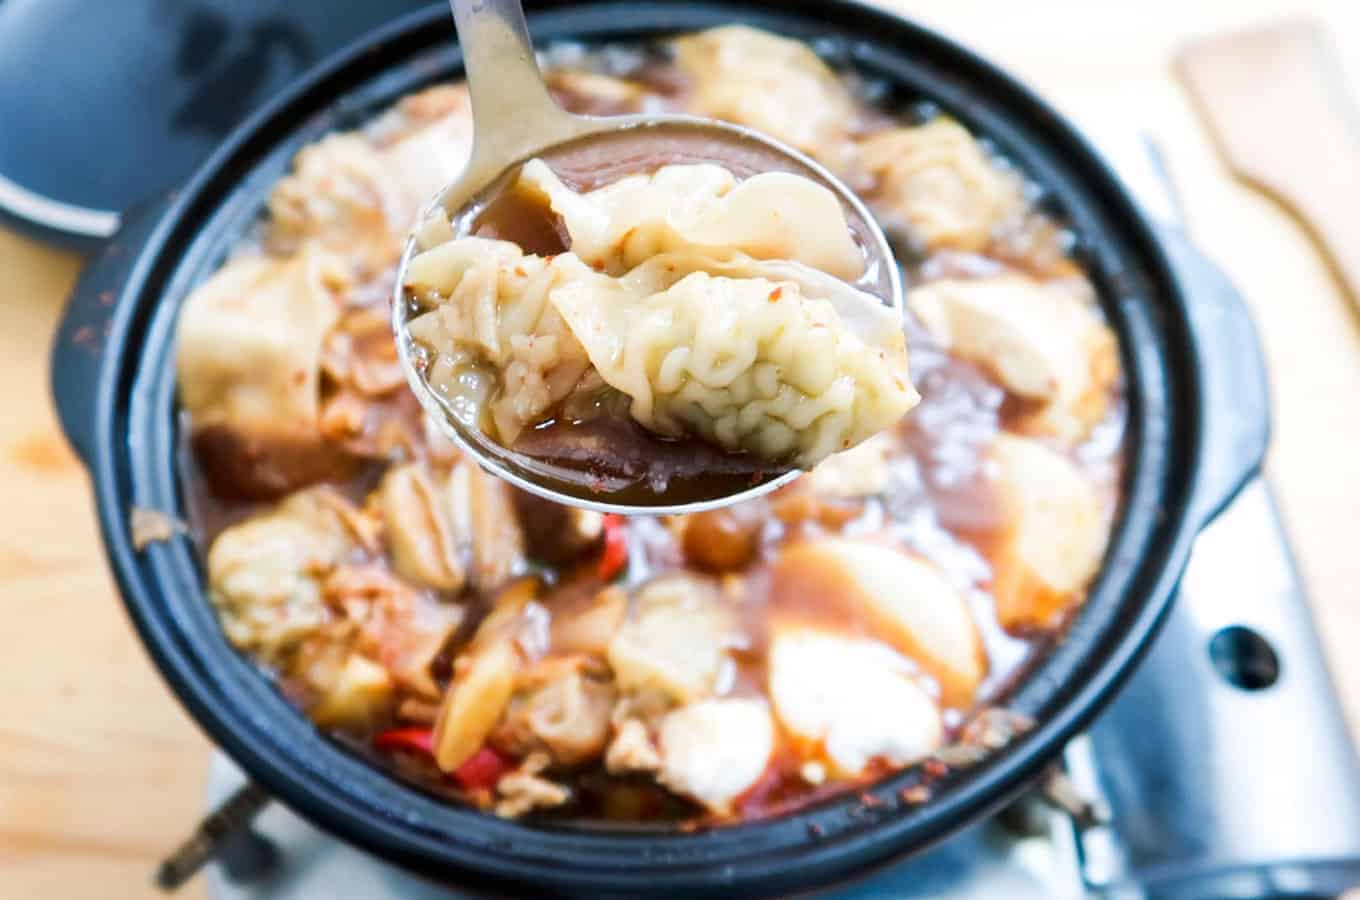 Hot-Korean-Spicy-Dumpling-Soup